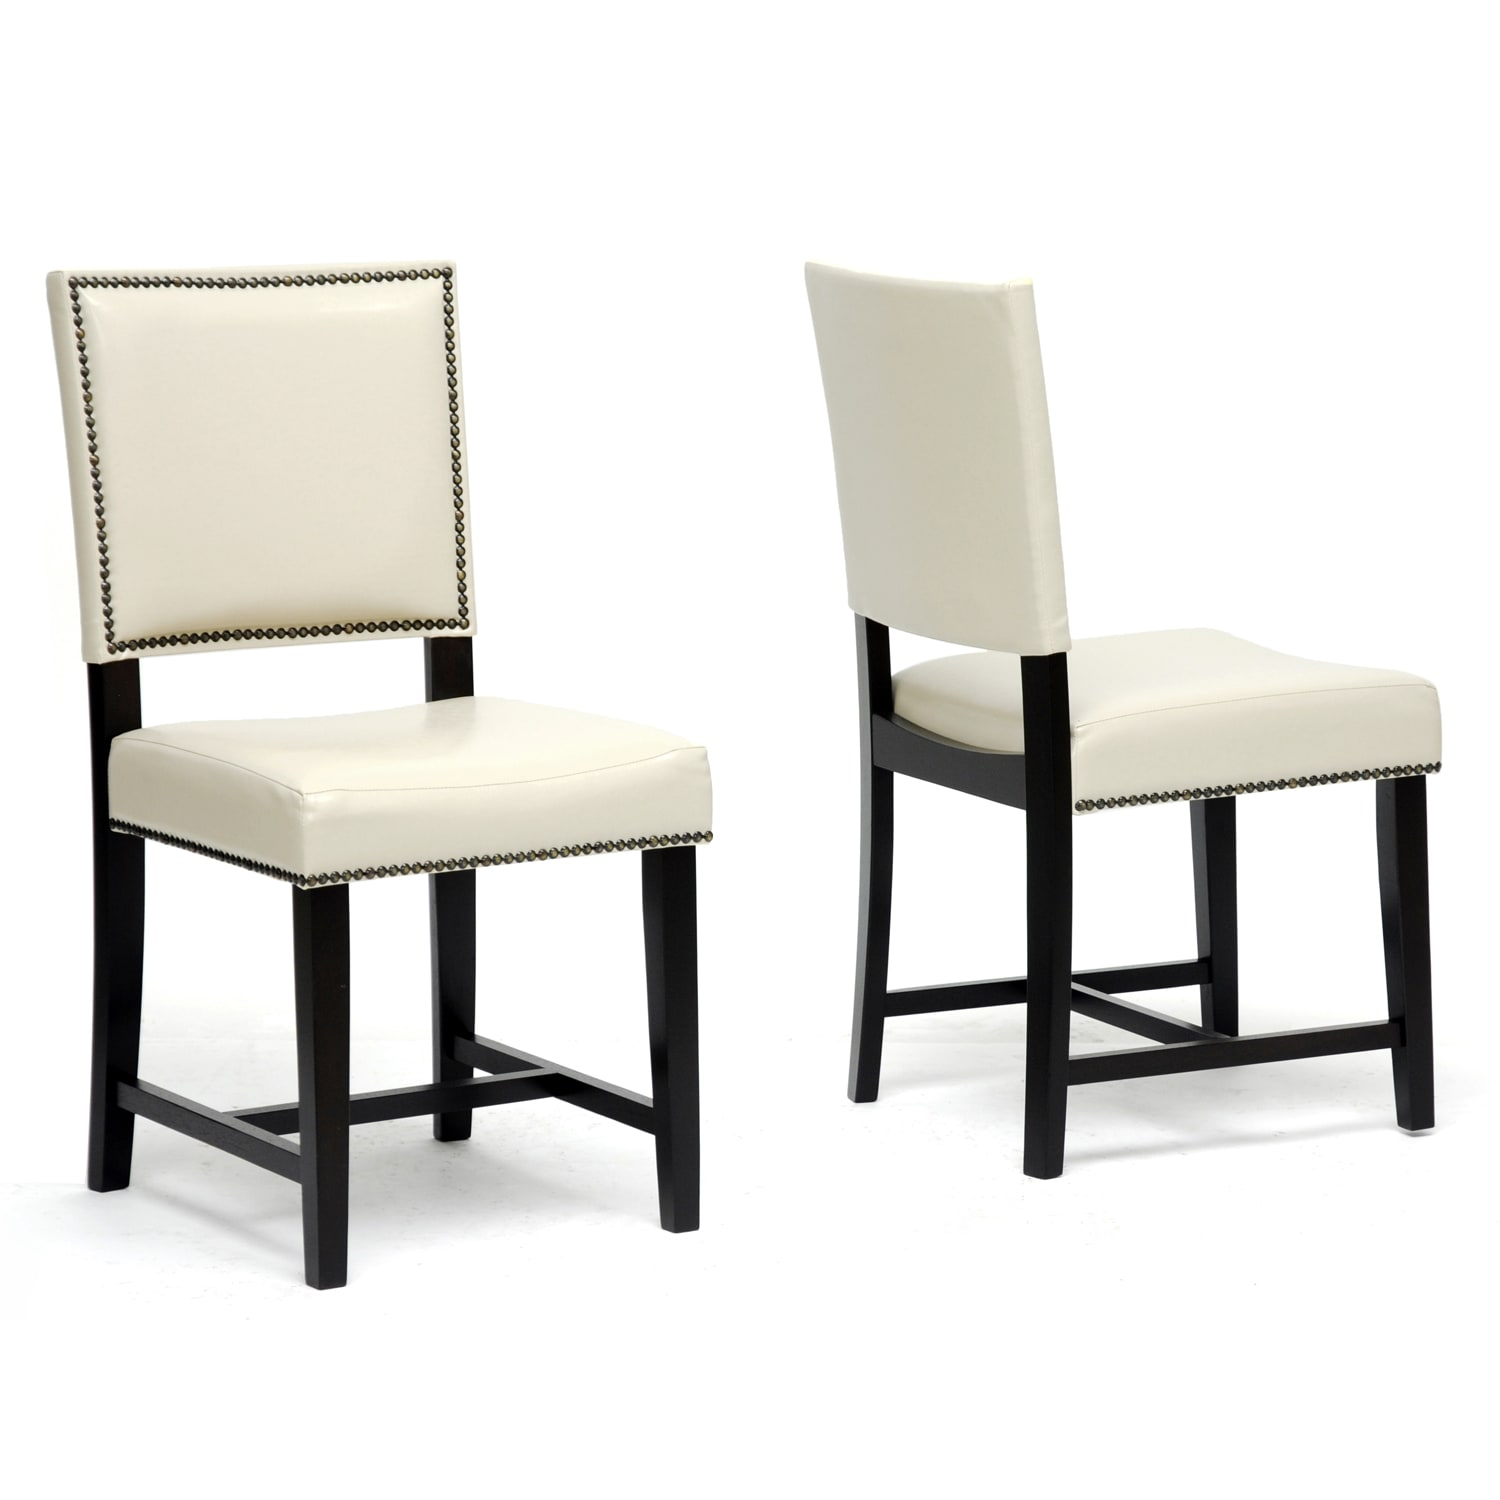 Cream Leather Dining Chairs Baxton Studio Dining Chairs Overstock Shopping The